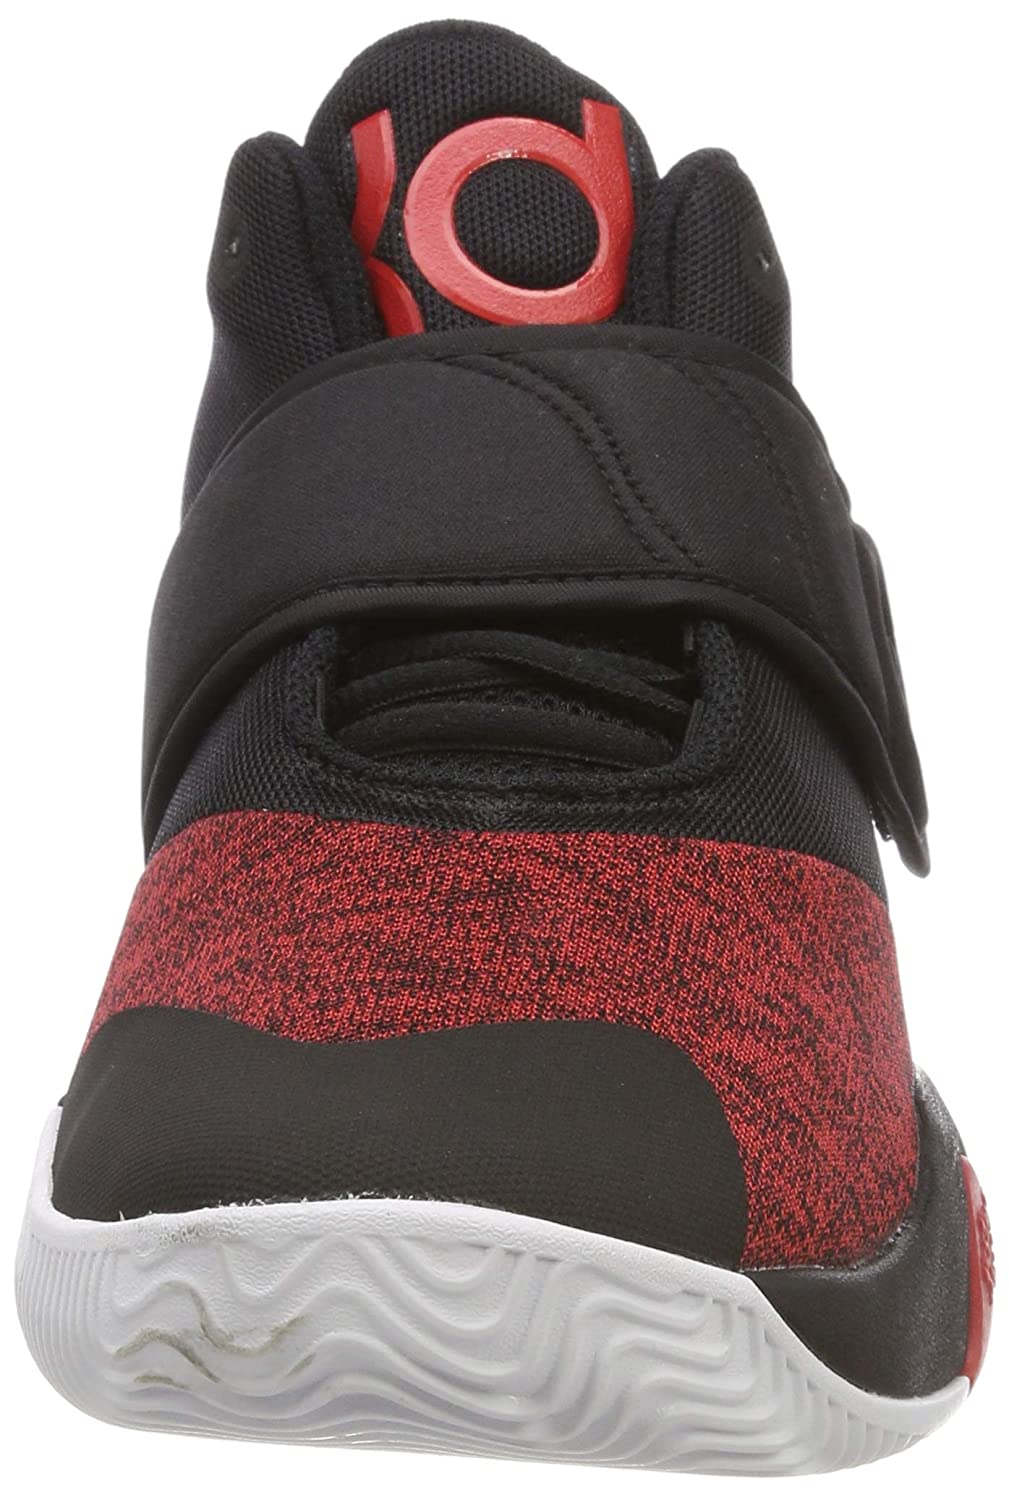 0682d896fef0 Nike Men s KD Trey 5 VI Black University Red-White Basketball Shoes (AA7067- 006) (UK-10 (US-11))  Buy Online at Low Prices in India - Amazon.in